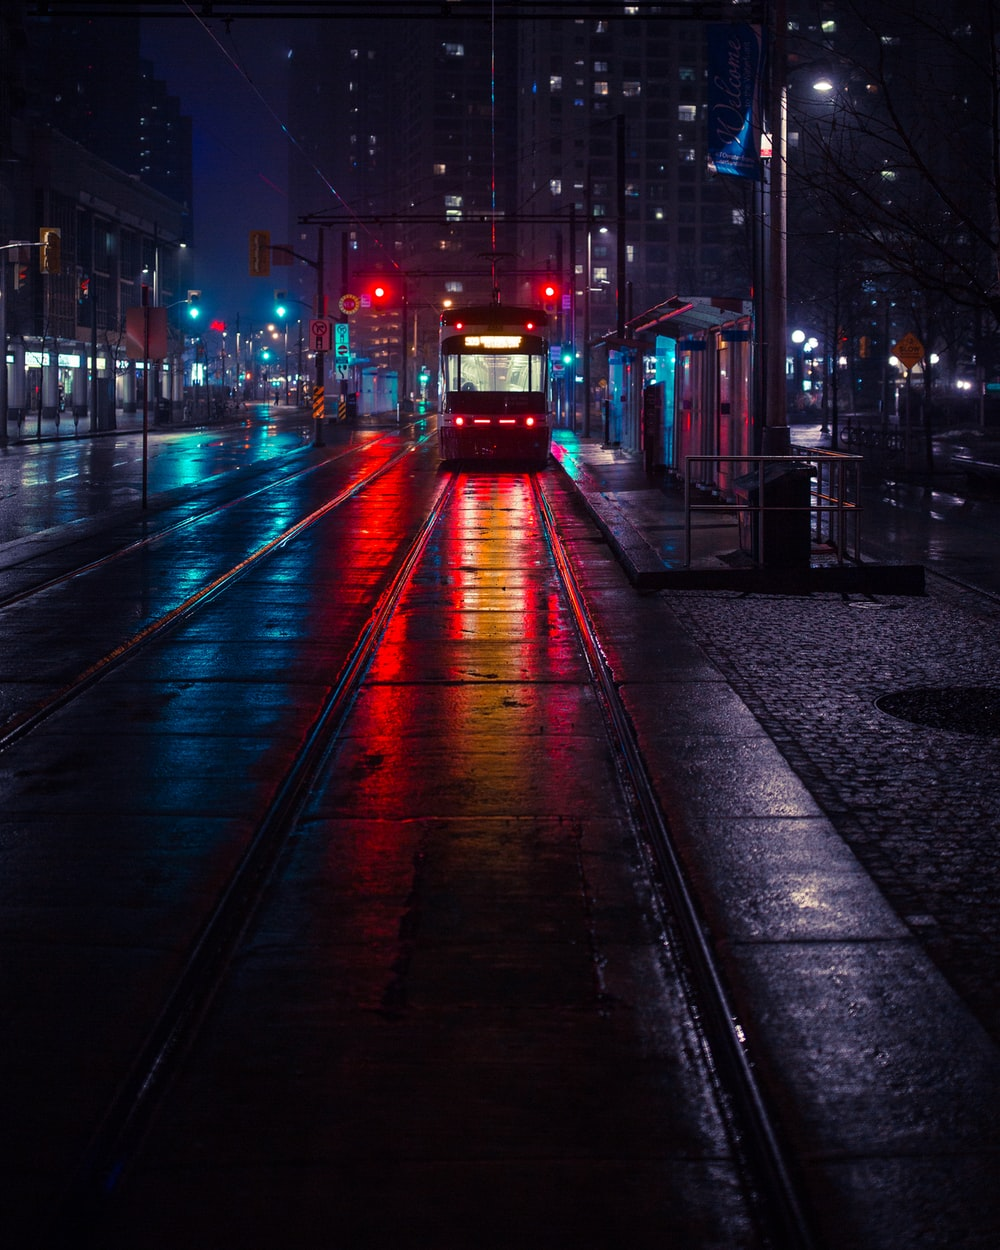 photo of tram beside waiting station during nighttime